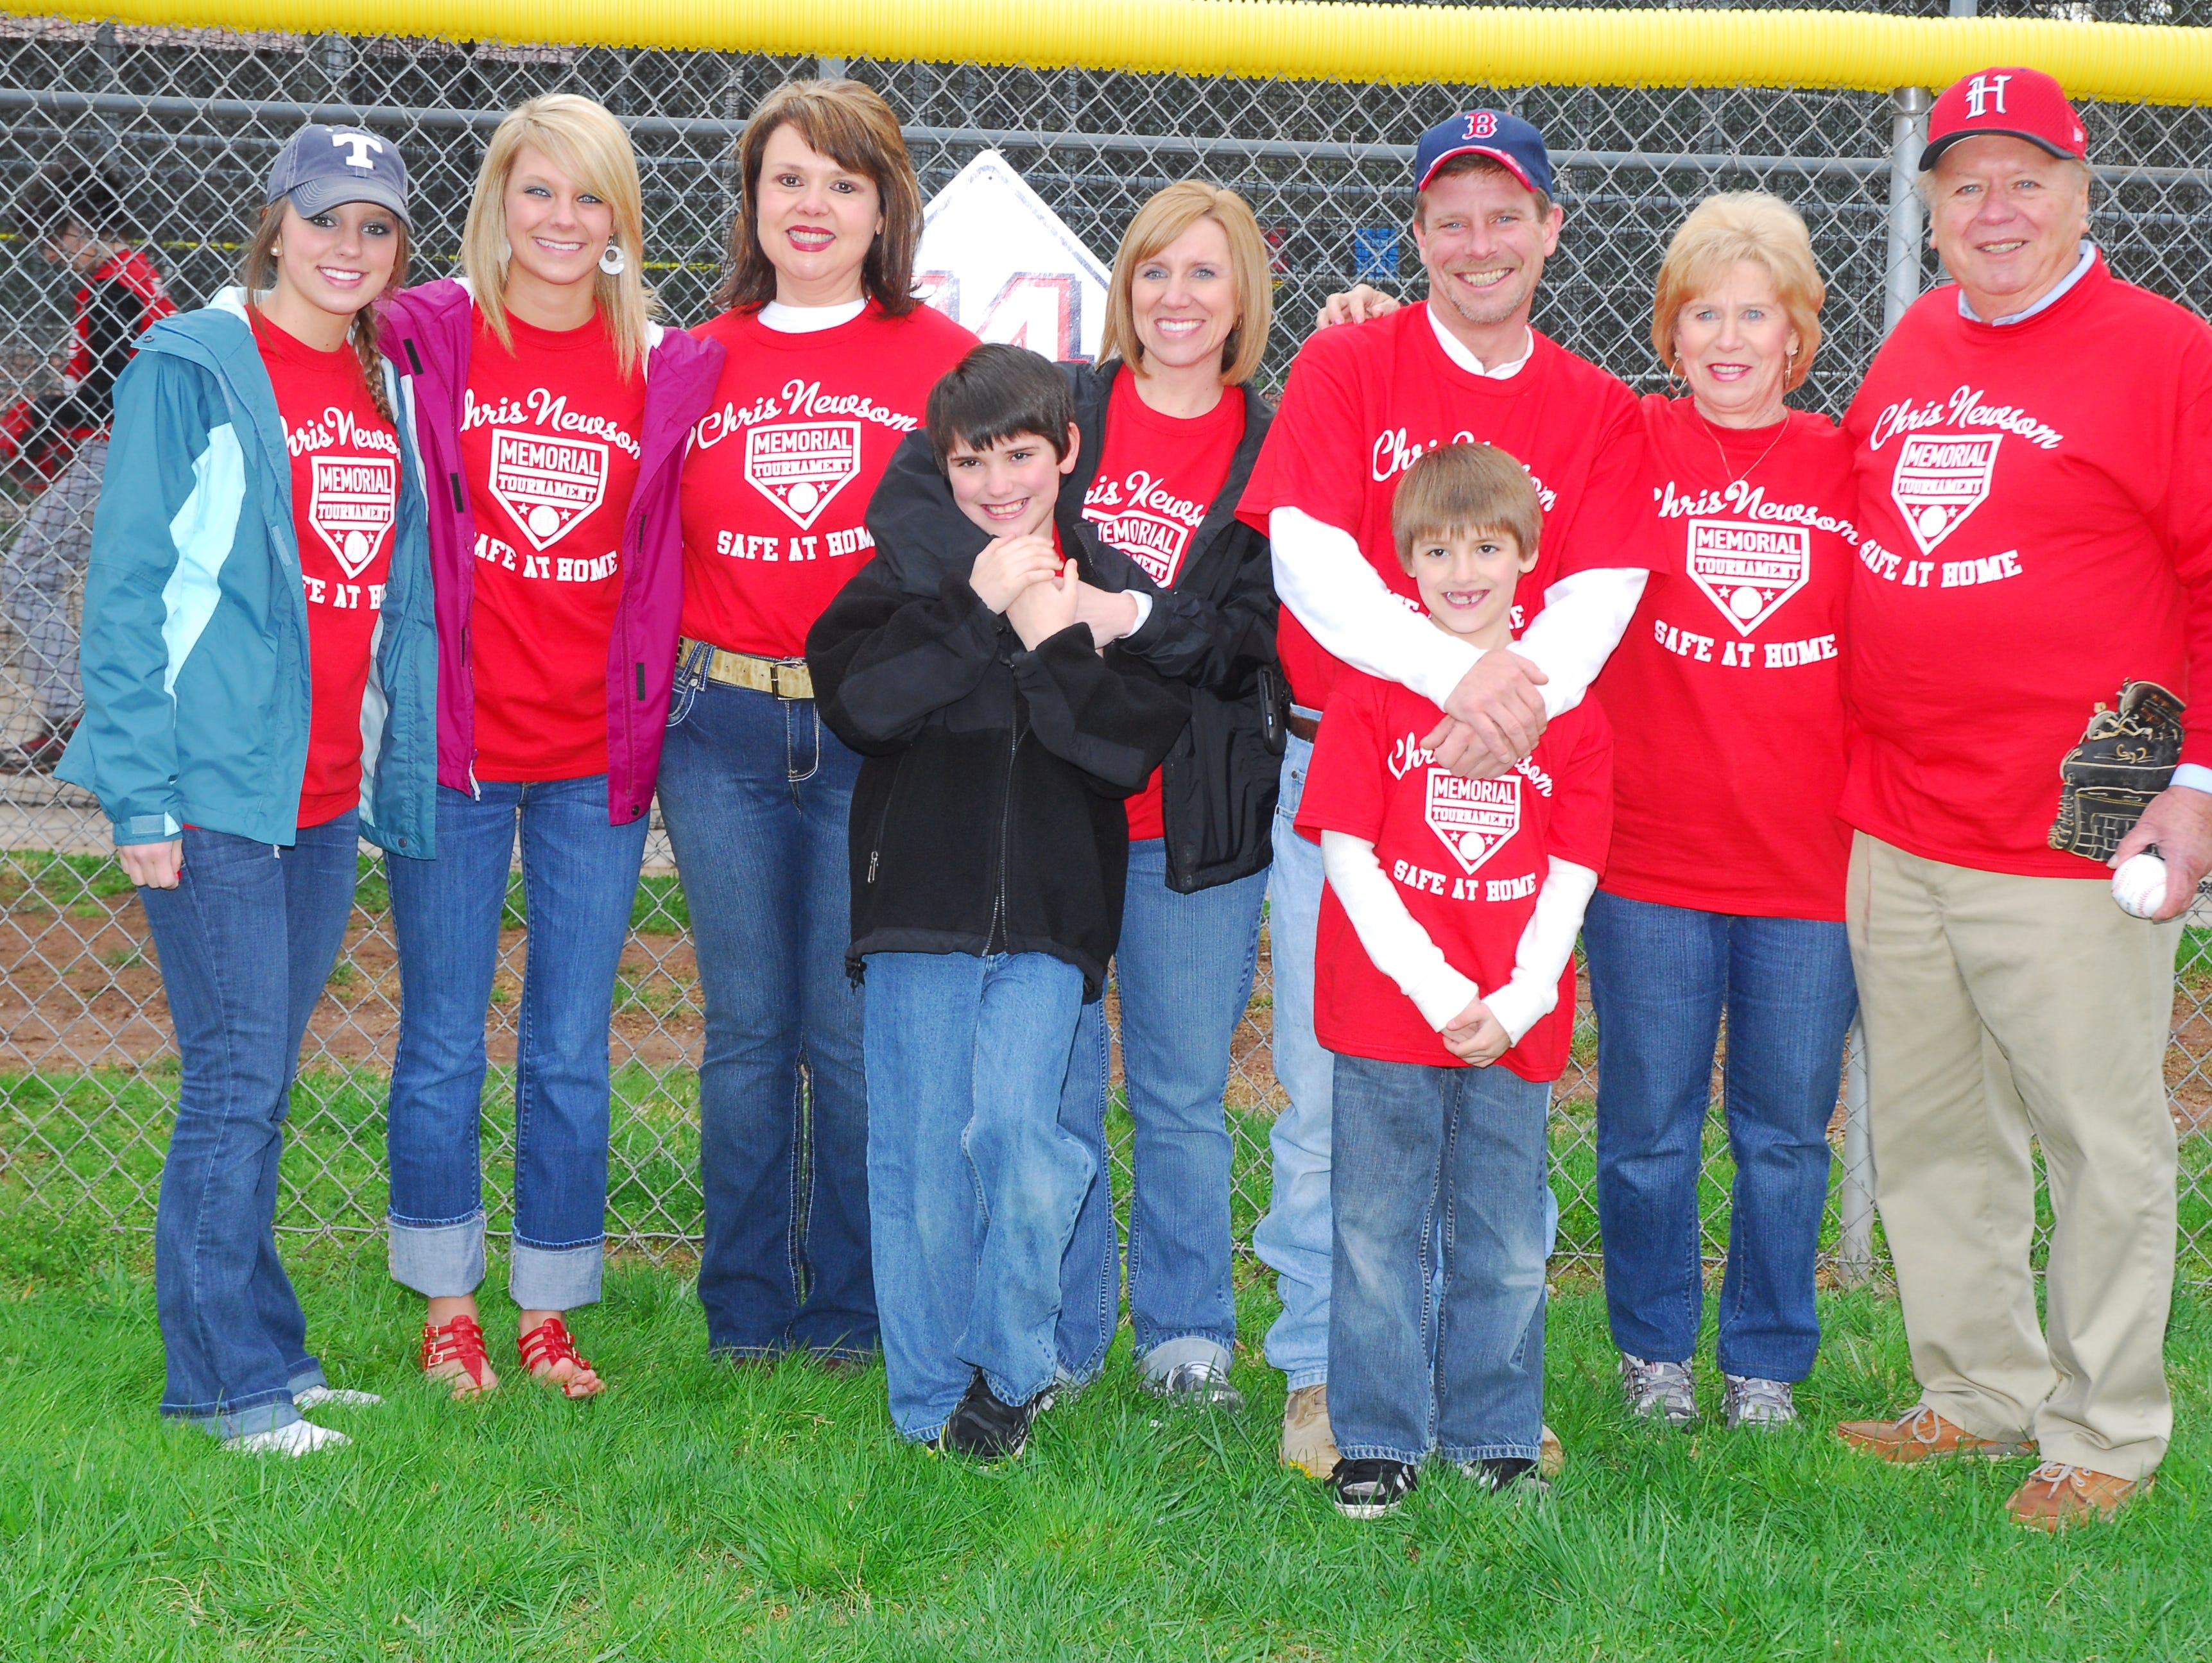 The Newsom family gathered at Halls Park for the opening of the 2011 Chris Newsom Memorial Tournament.